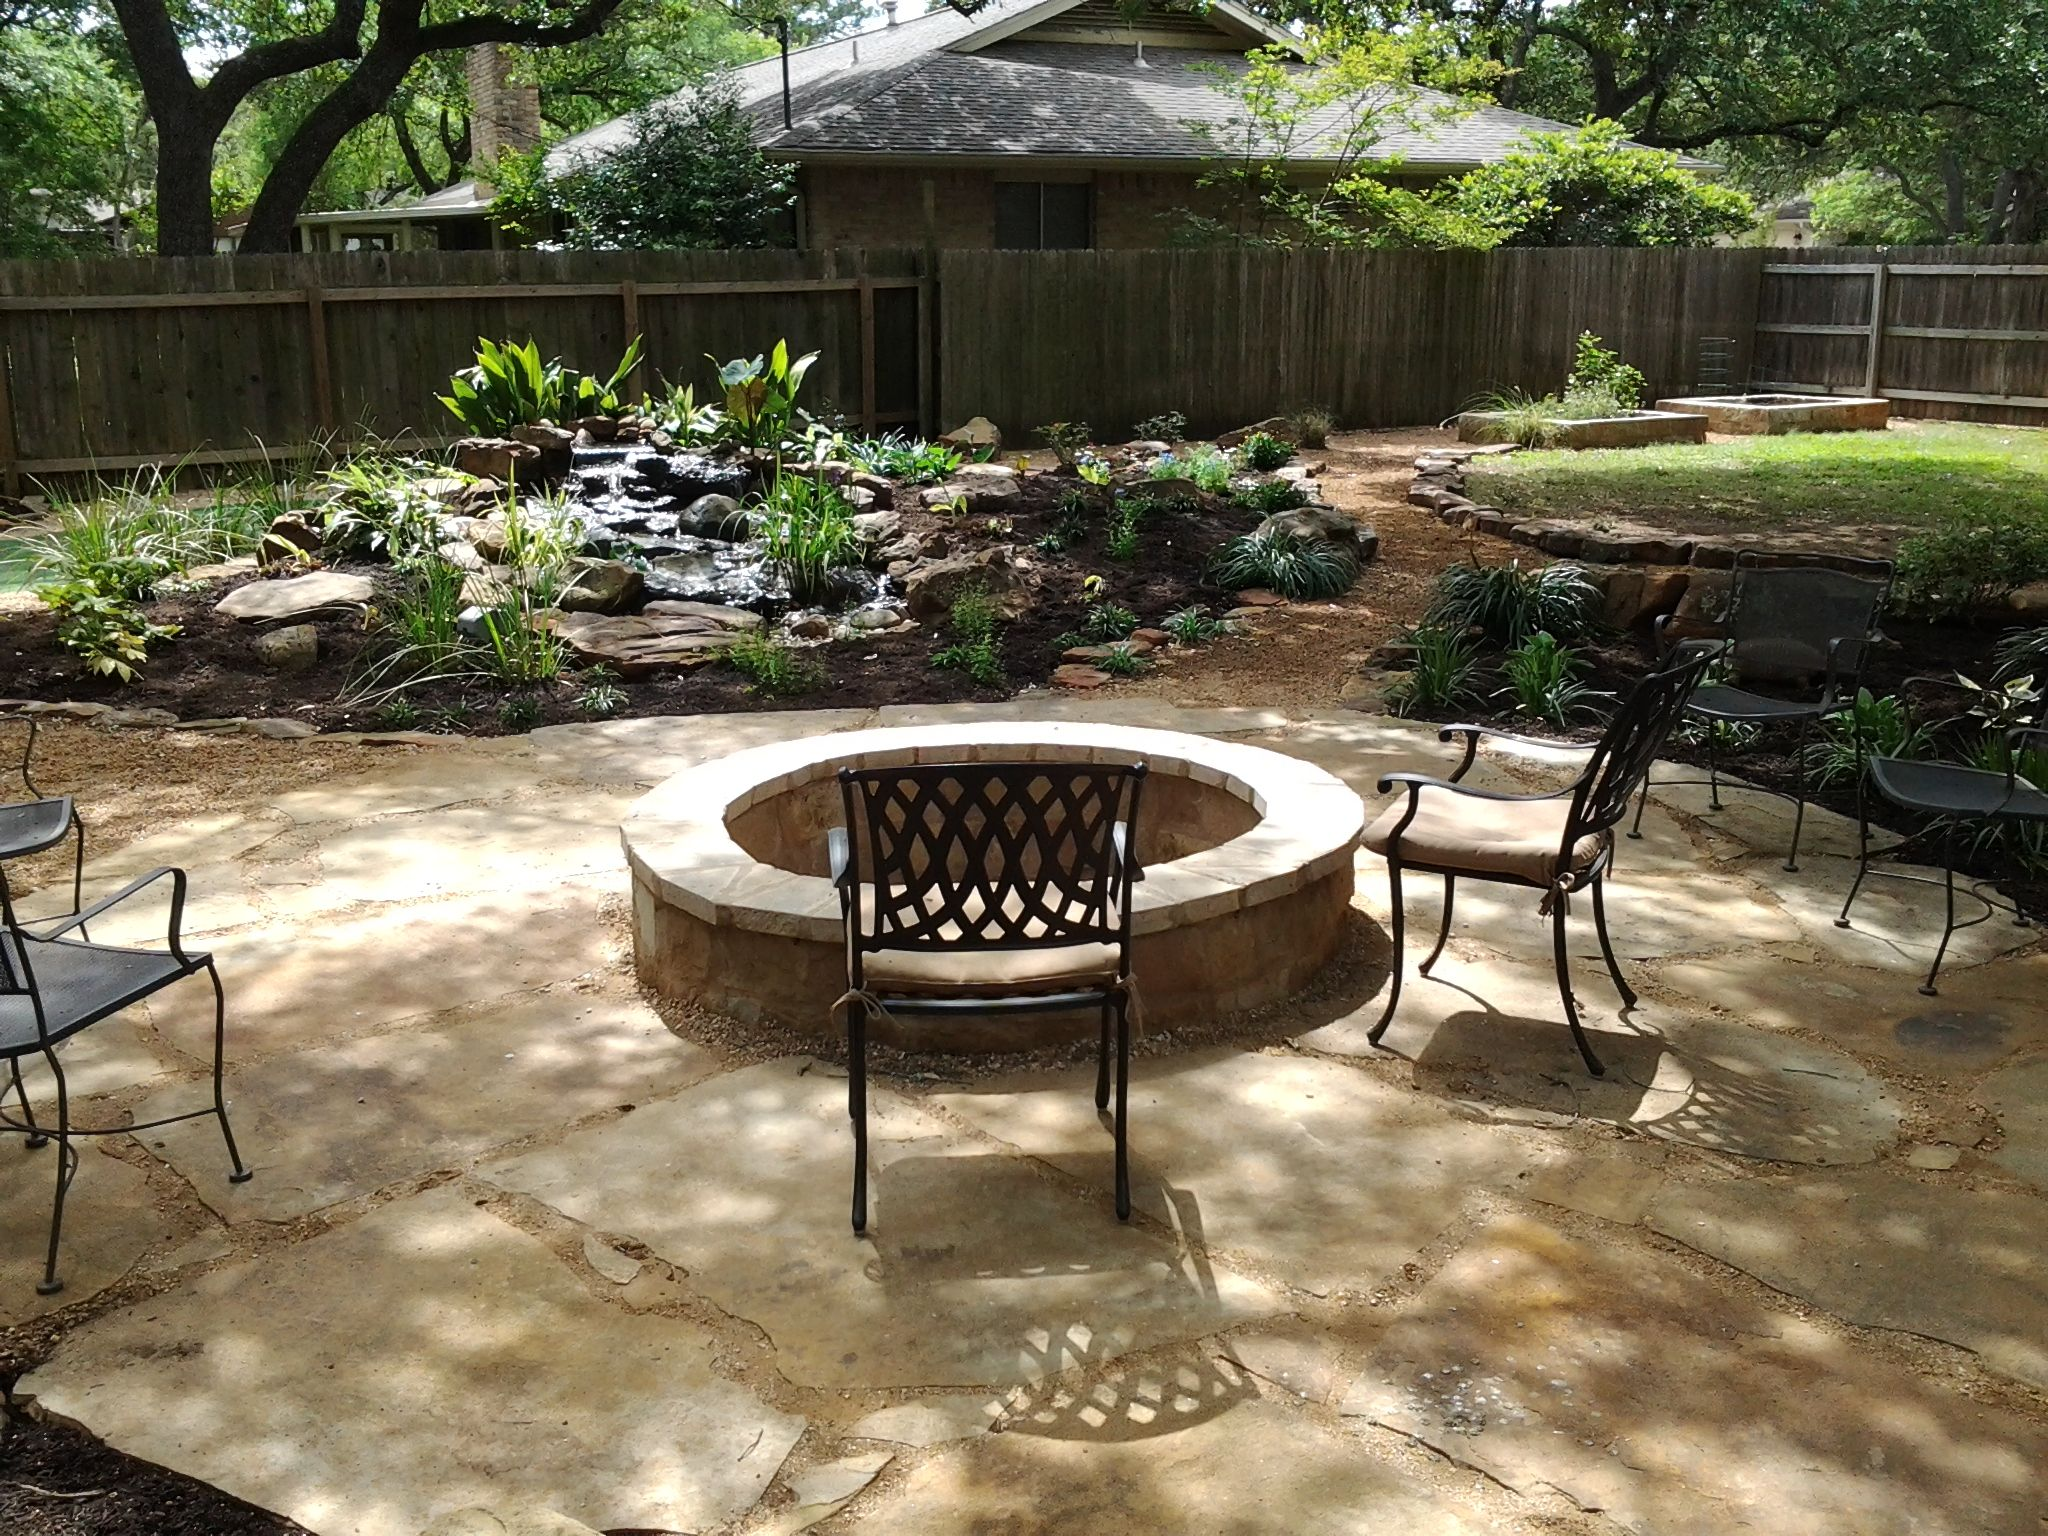 Backyard Landscaping Ideas With Fire Pit diy fire pit ideas our camping adventure begins Oklahoma Flagstone Patio Set In Decomposed Granite With Fire Pit And Water Feature Set In A Rustic Backyardbackyard Patiobackyard Landscapinglandscaping